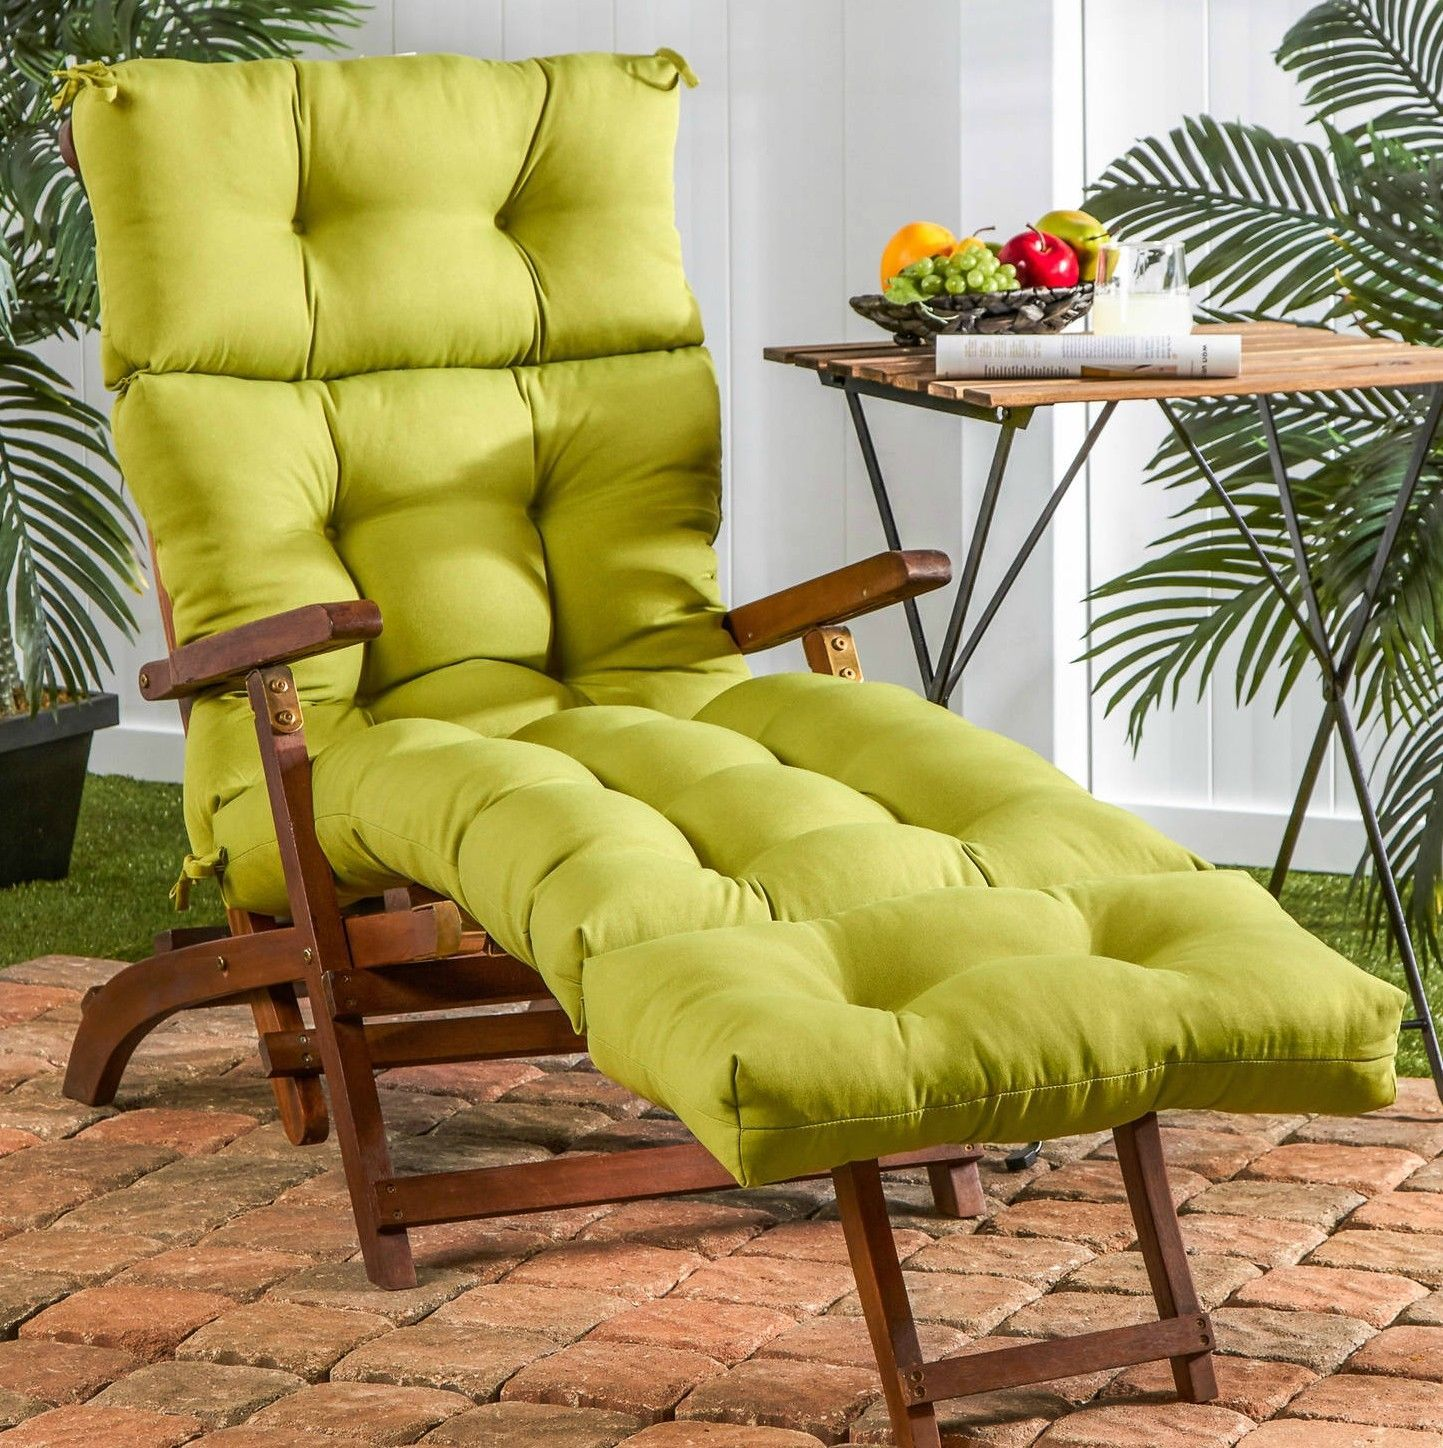 Green Chaise Lounge Cushion Tufted Pool Overstuffed Outdoor Replacement Pillow Ebay Chaise Lounge Cushions Green Chaise Lounge Chaise Lounge